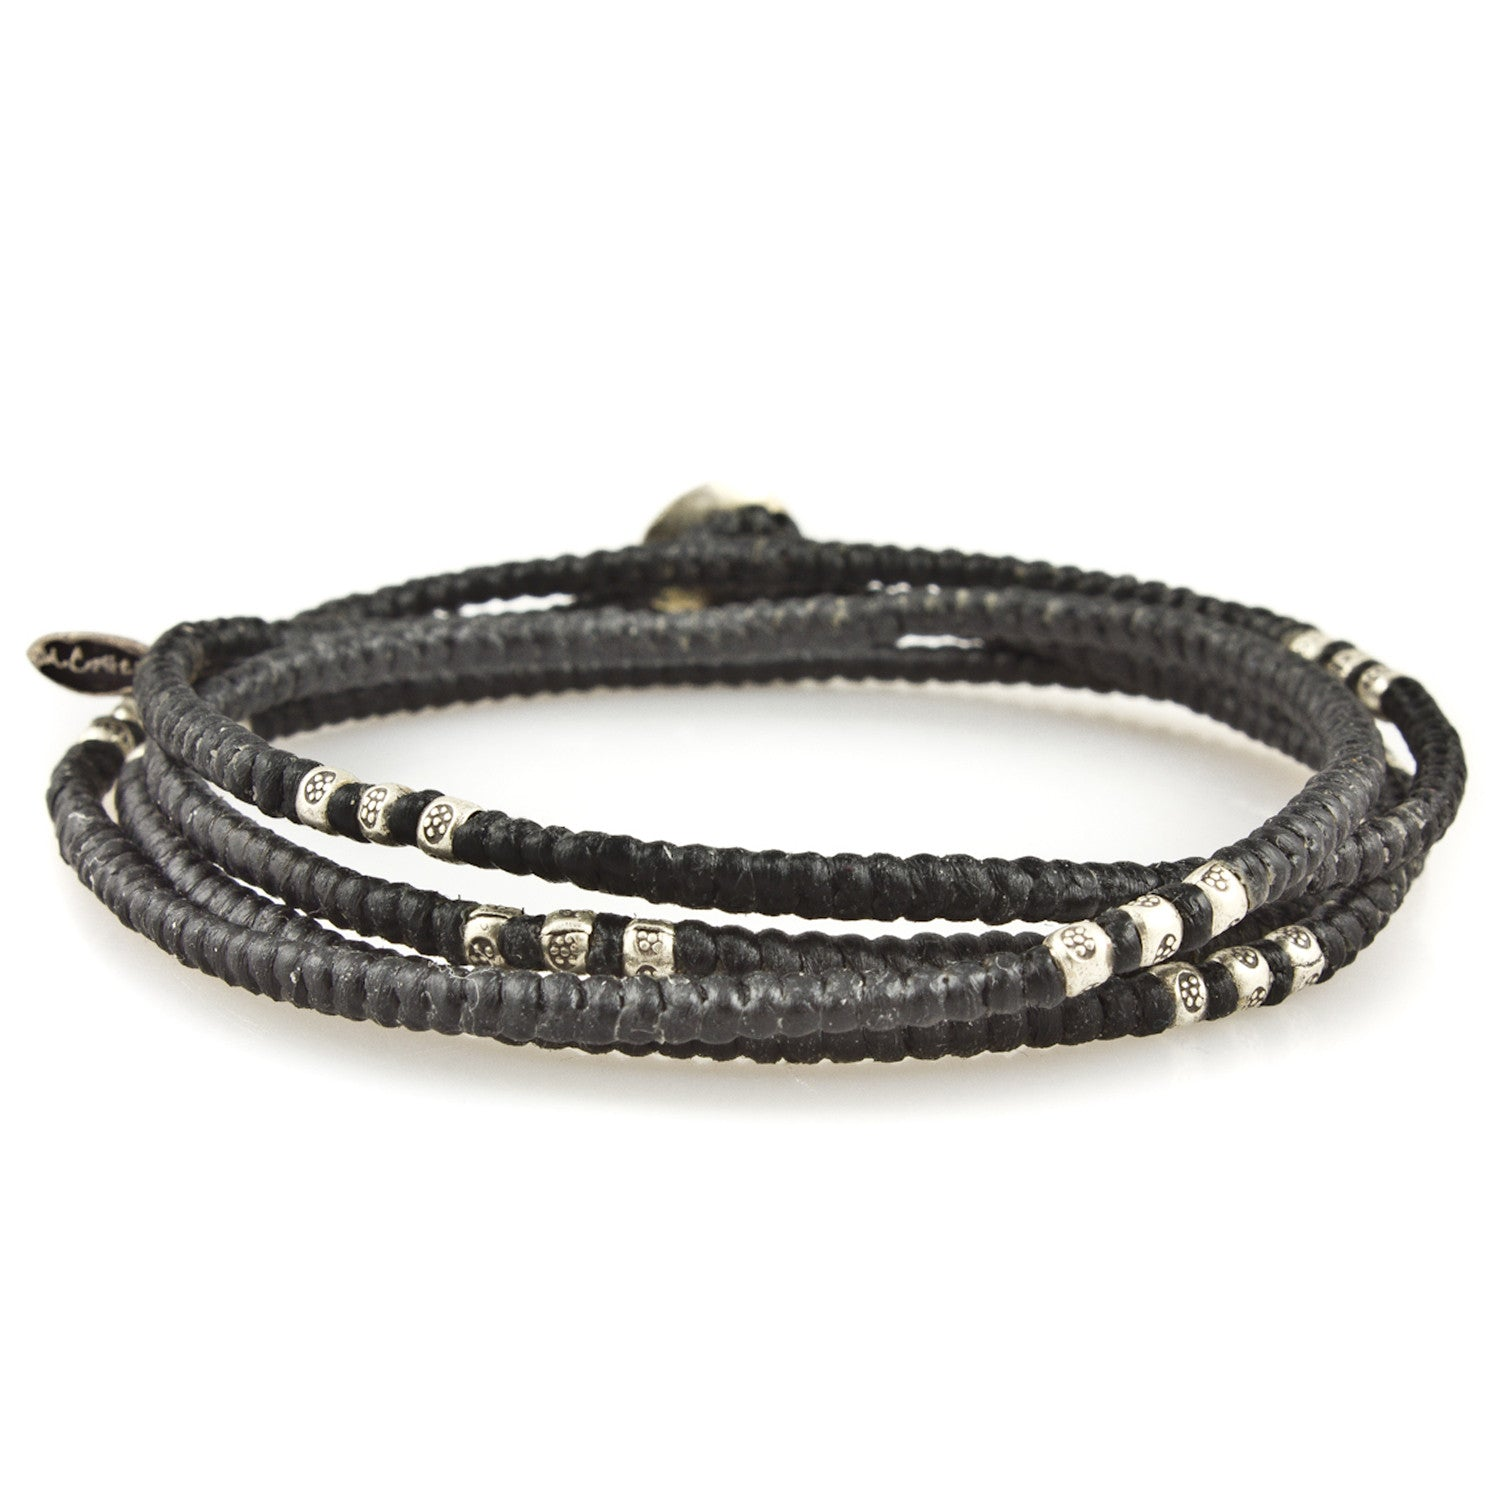 Knotted 4 Layer Silver Thai Stamped Wrap Bracelet